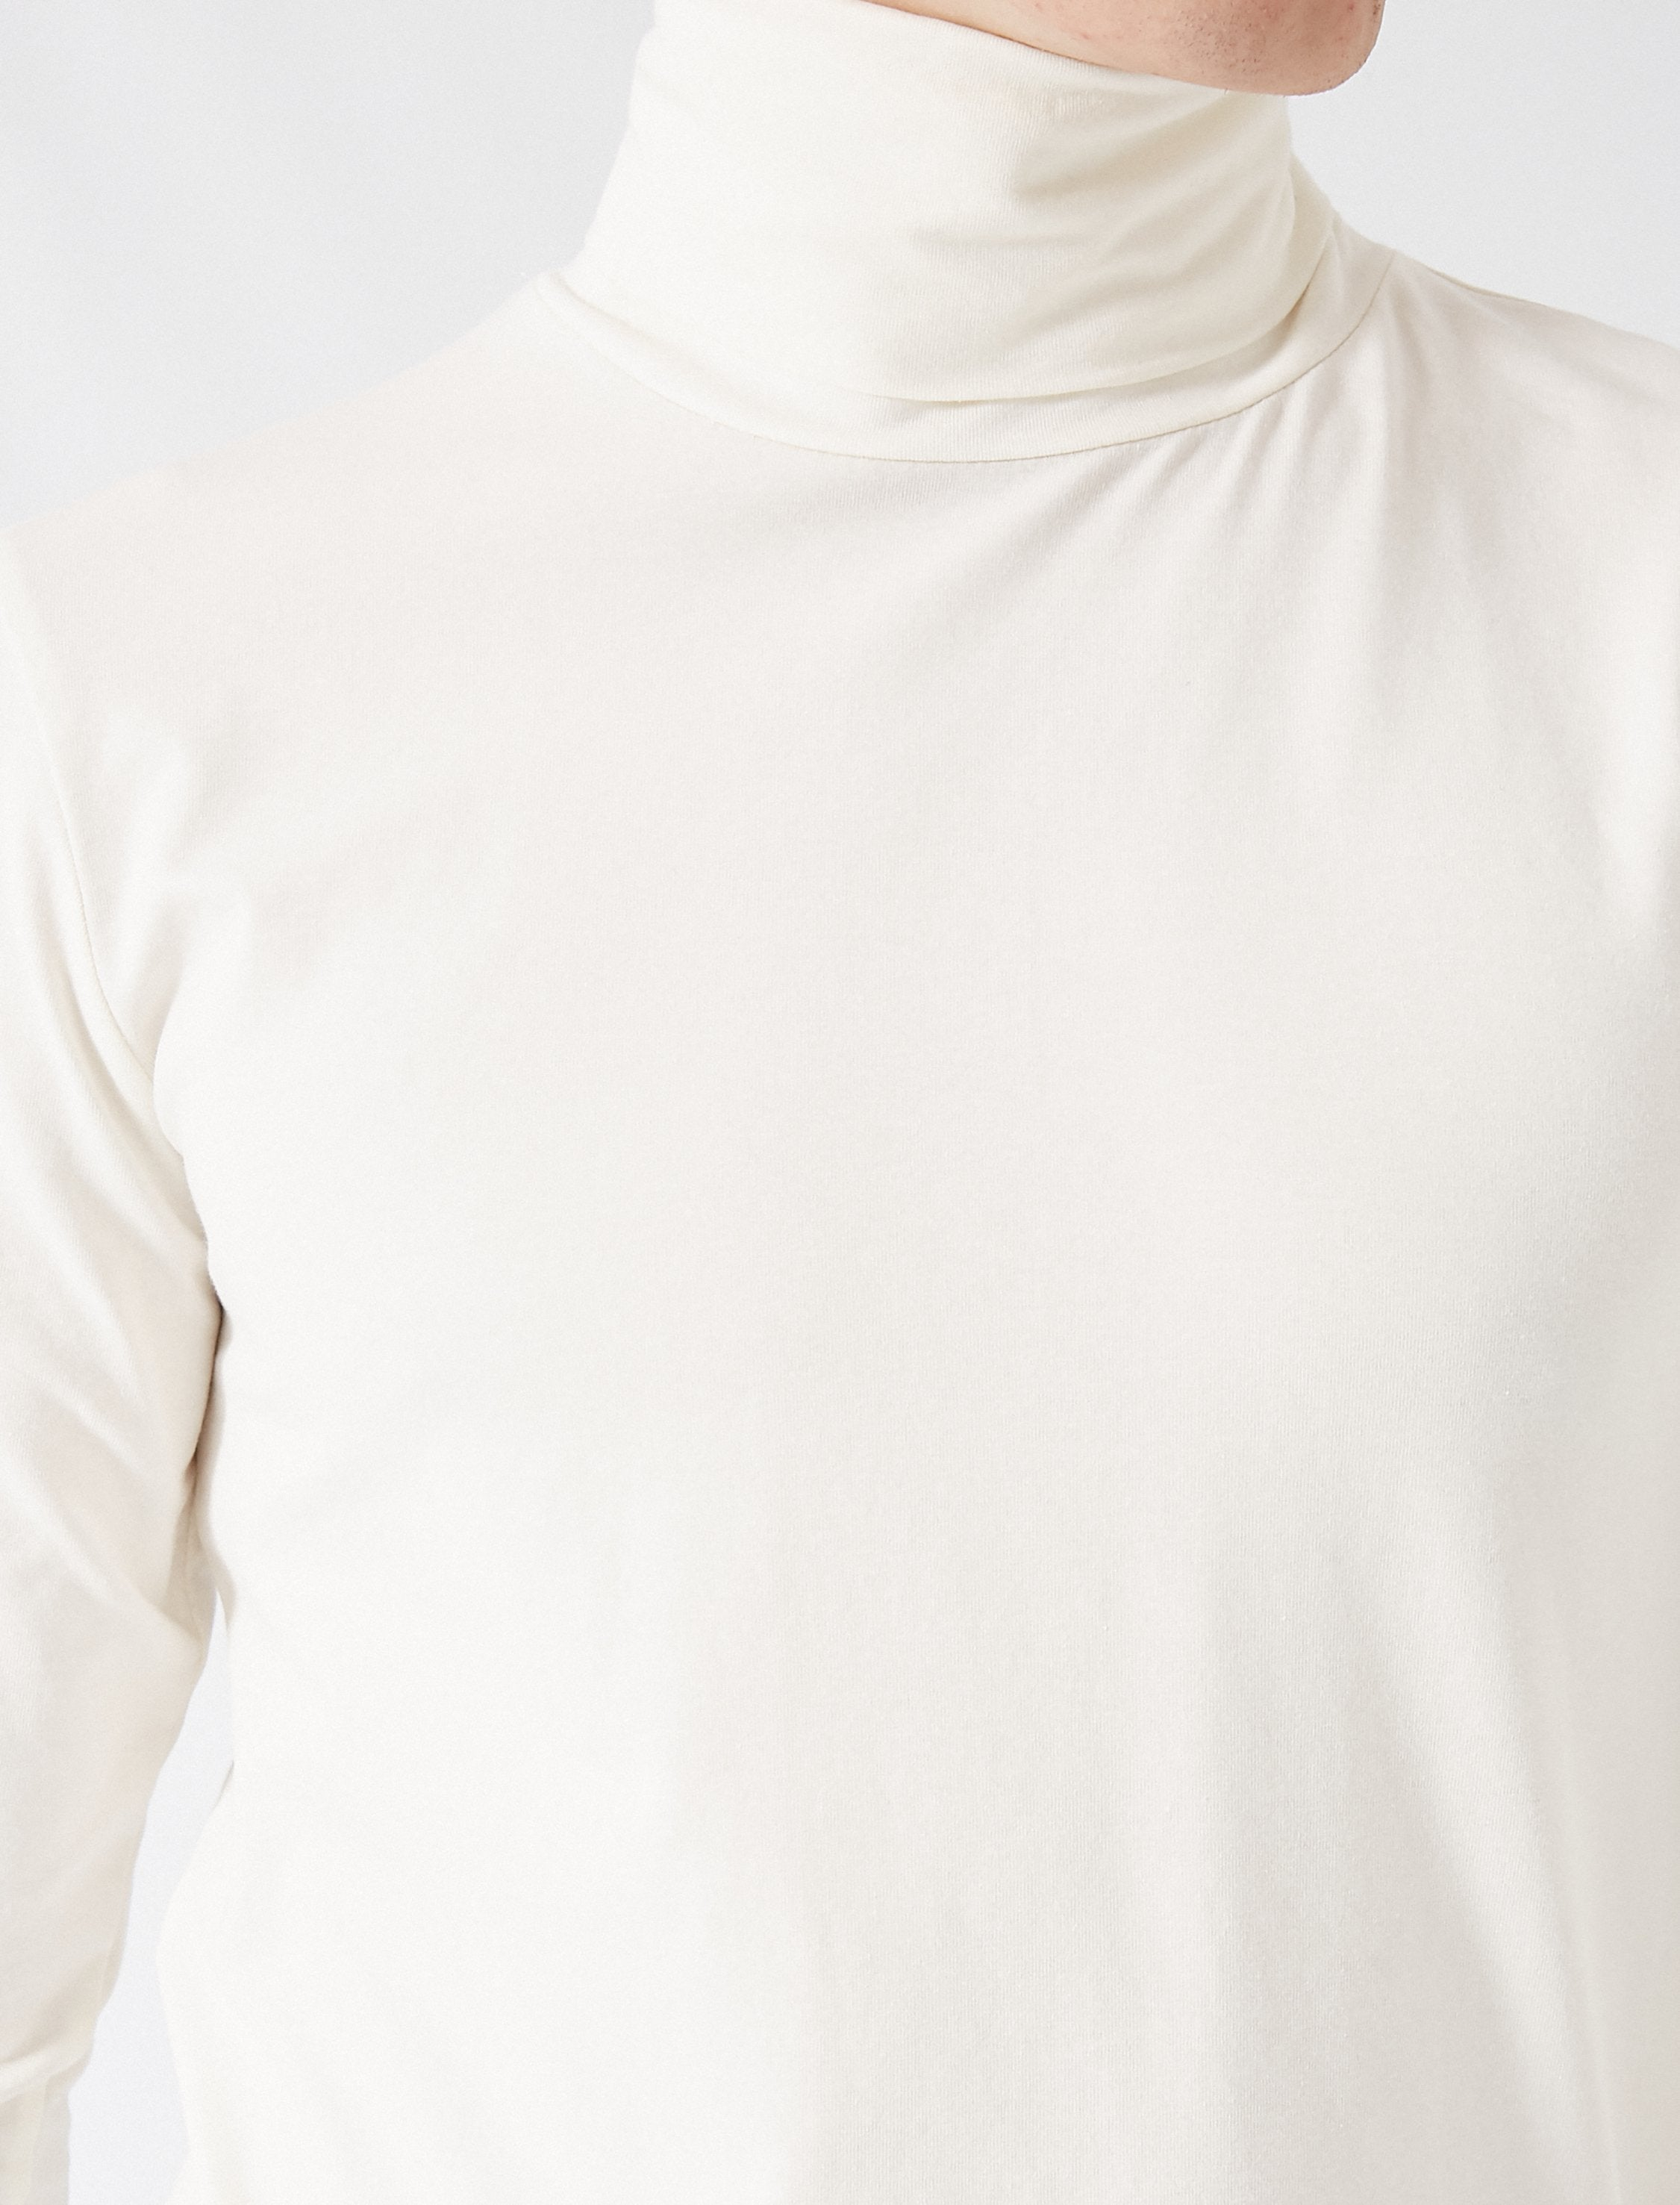 Turtle Neck Tshirt in Cream